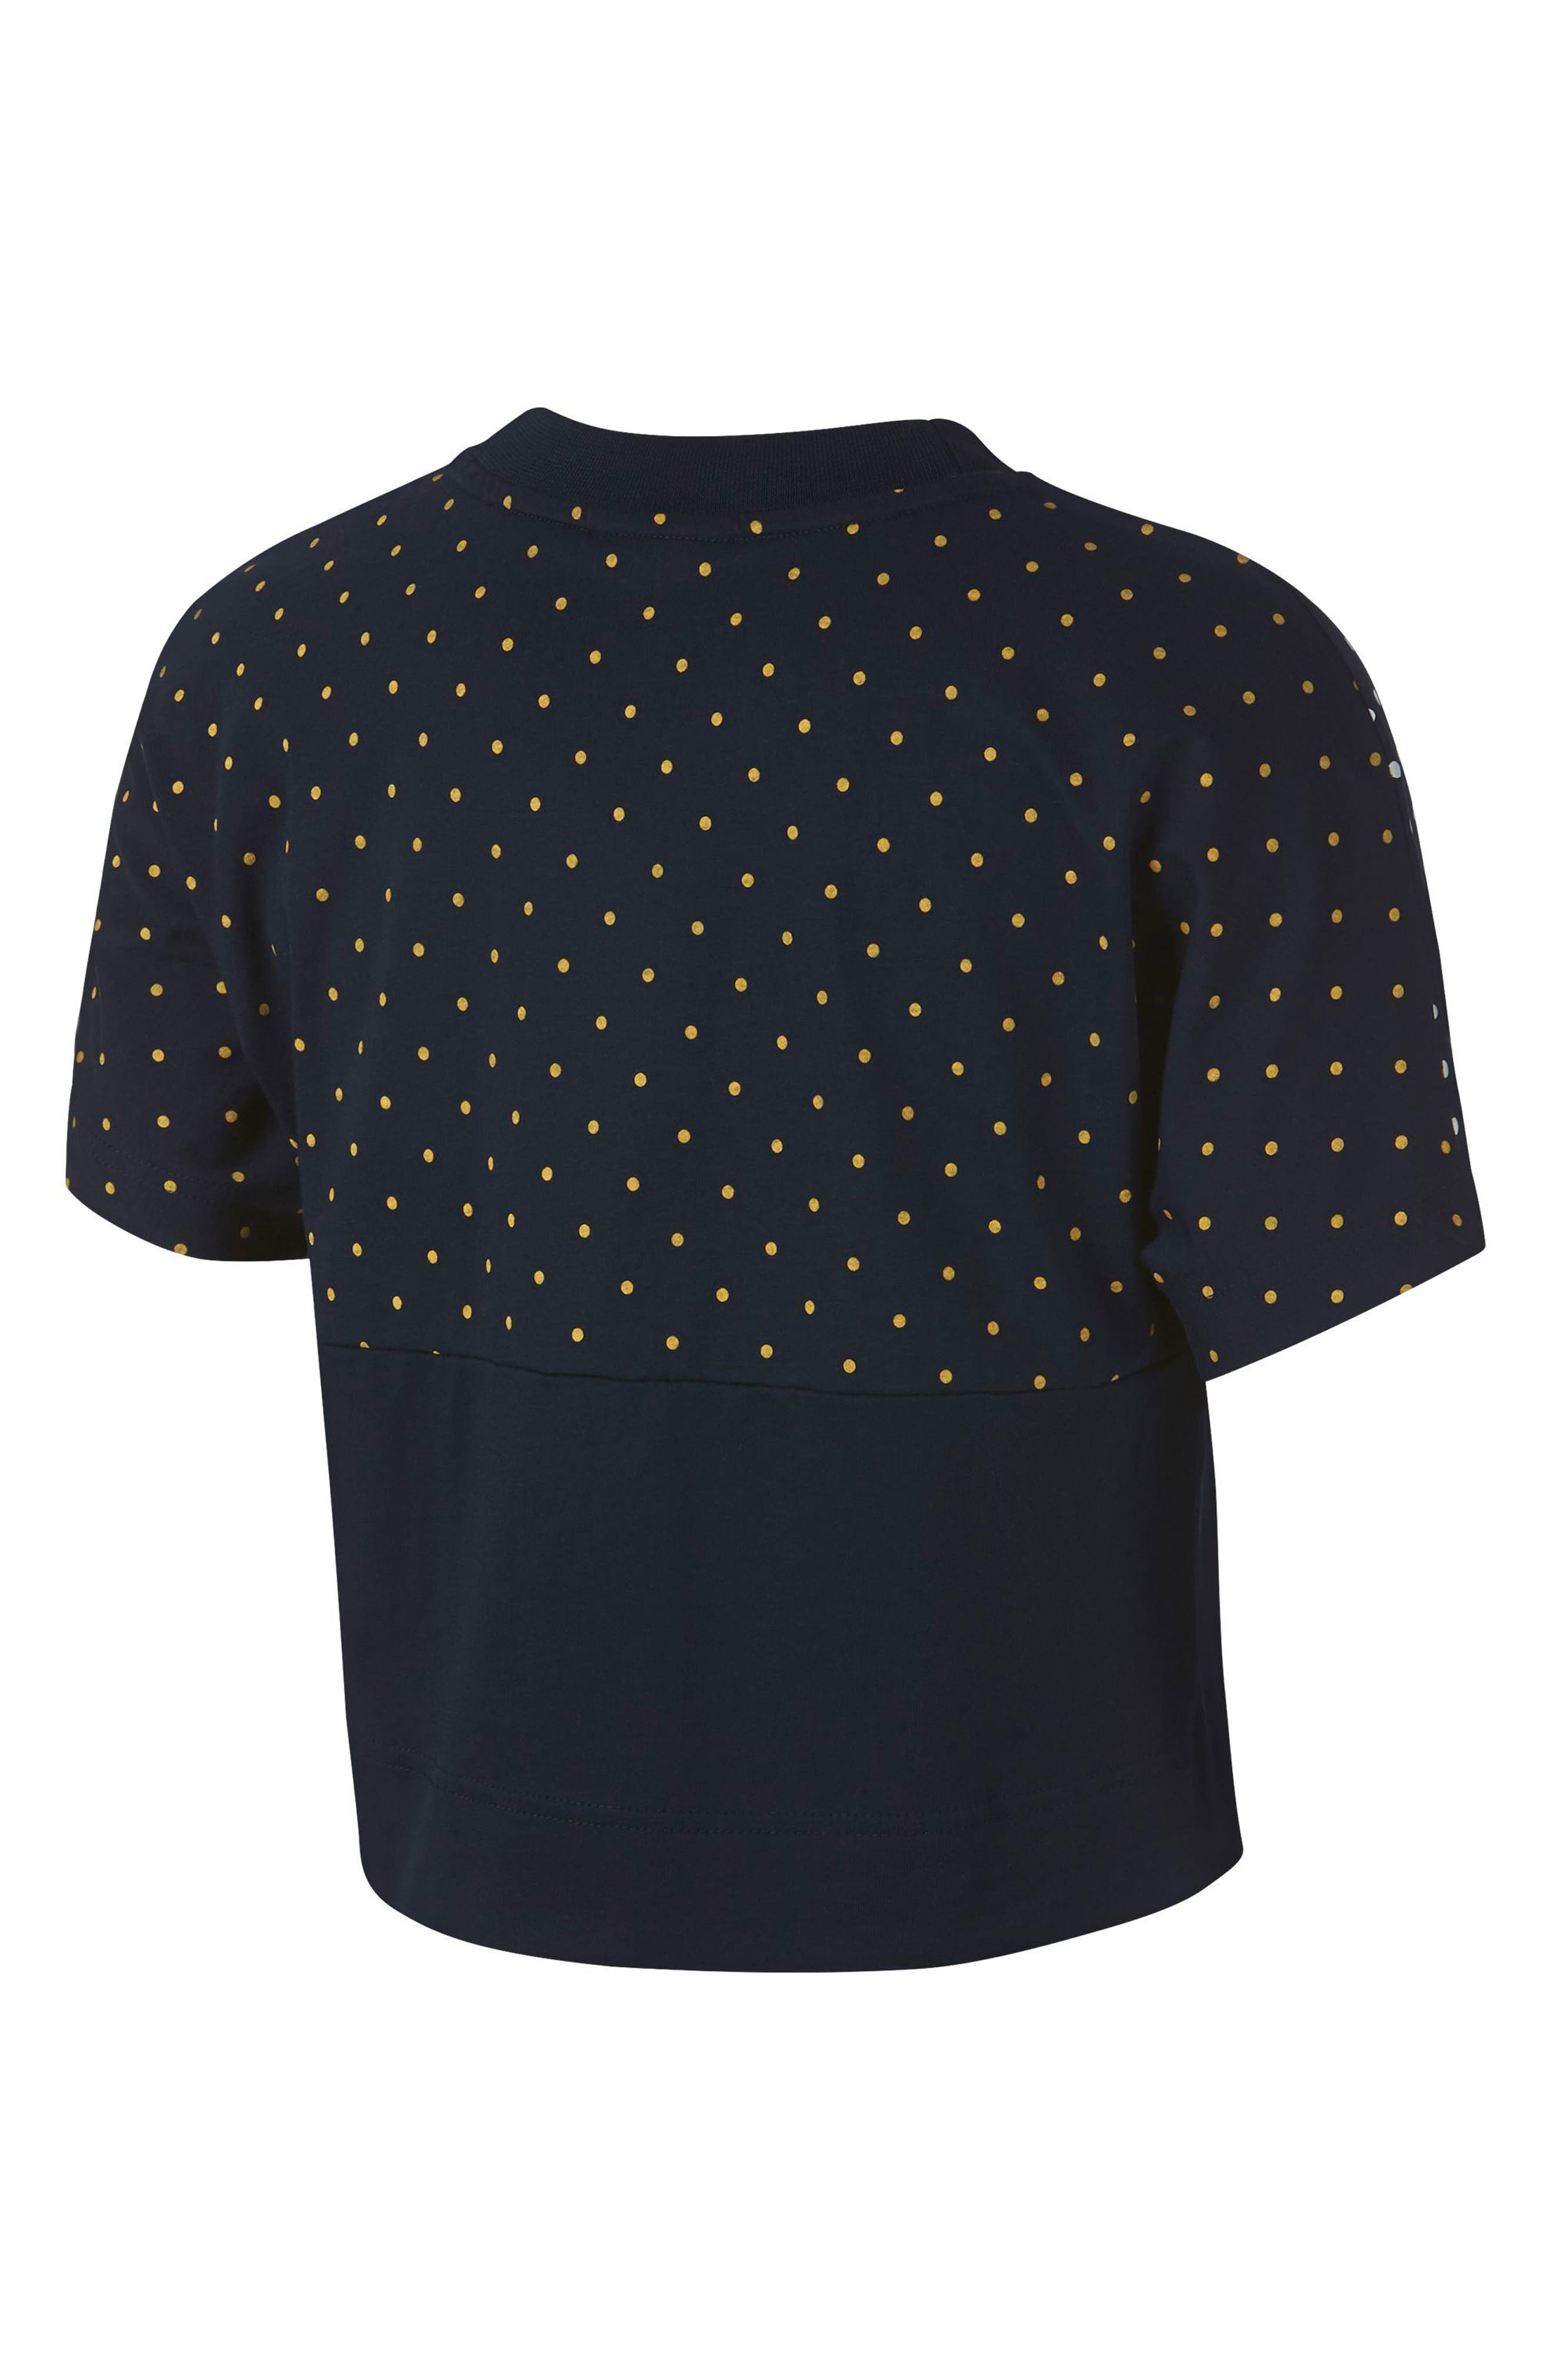 Womens Polka Dot Top Nordstrom Kate Embroidery Blouse In Blue Beatrice Clothing